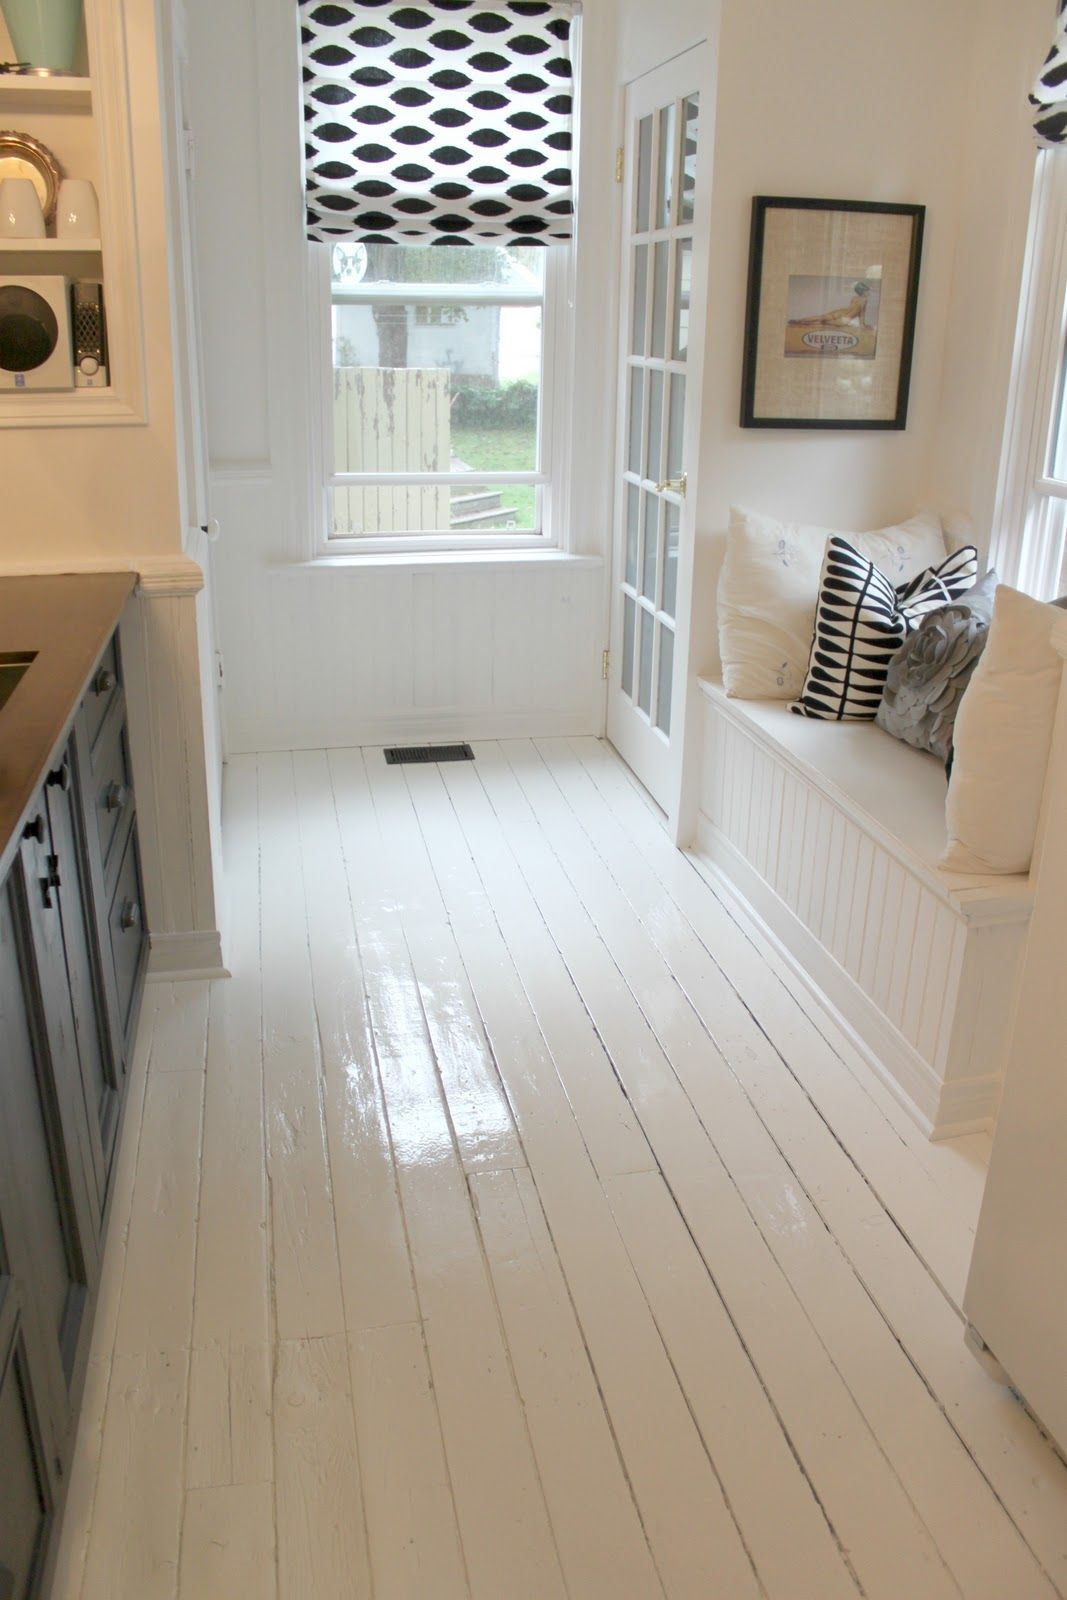 Great Little Nook In A Kitchen Made By Girl Featured The Clean